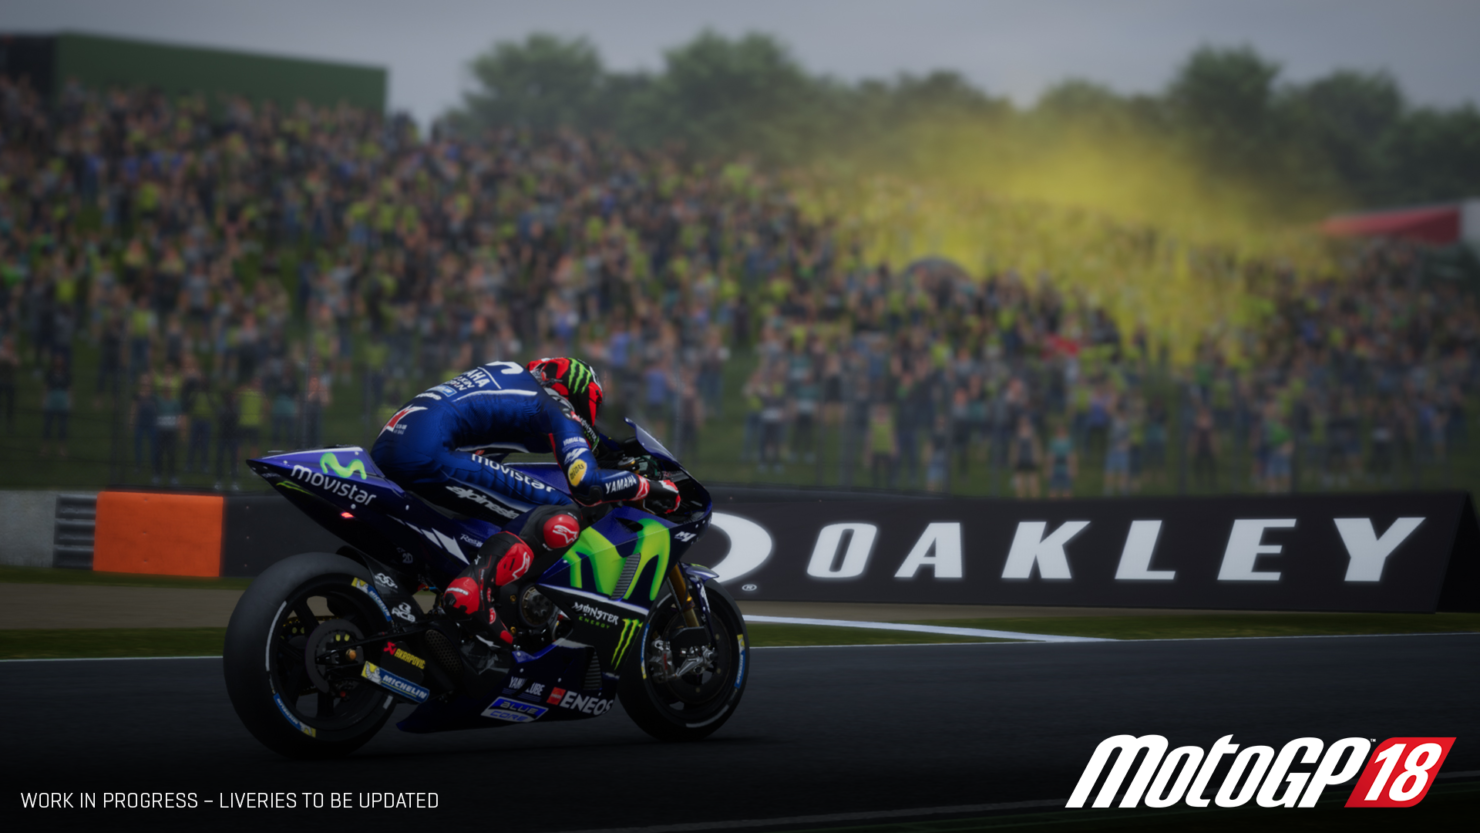 MotoGP18 Officially Revealed; Franchise Makes Nintendo Switch Debut